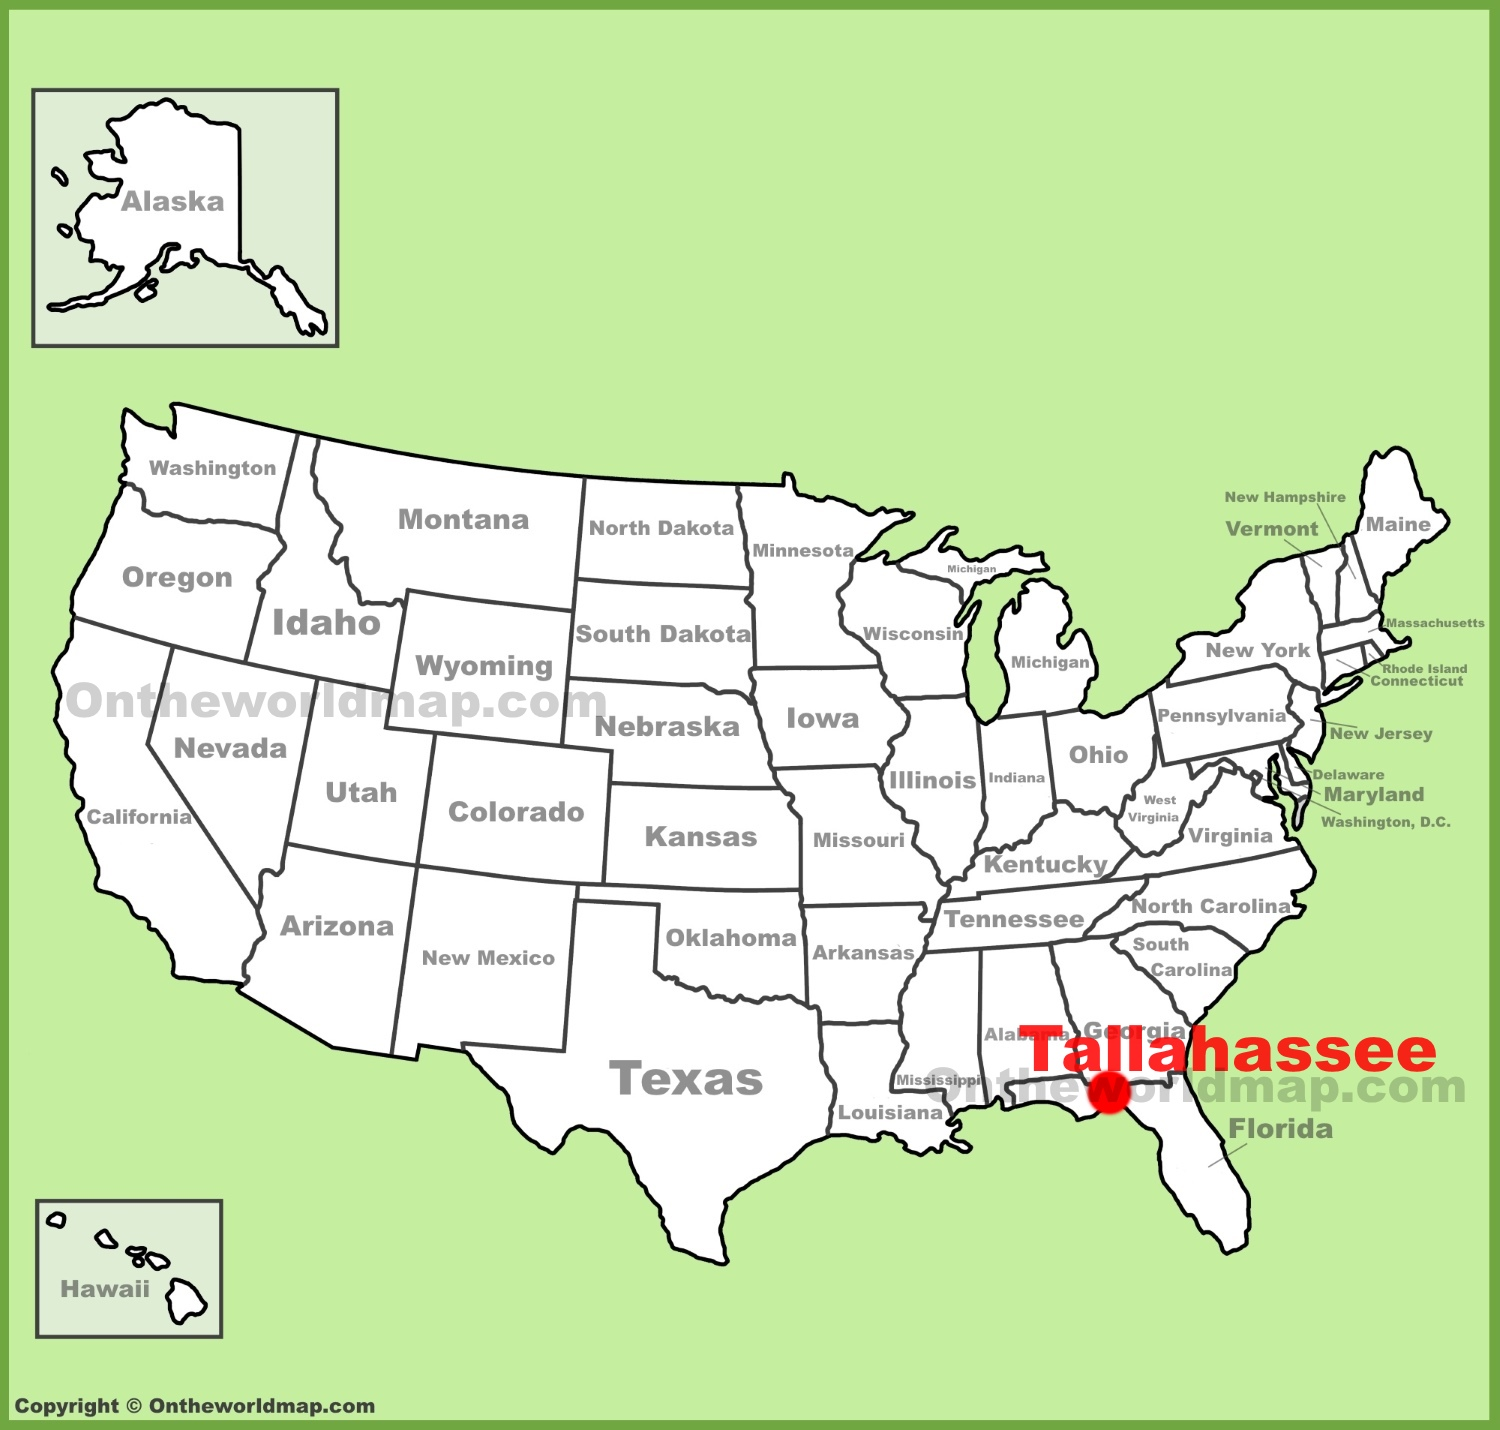 Map Of Tallahassee Tallahassee location on the U.S. Map Map Of Tallahassee